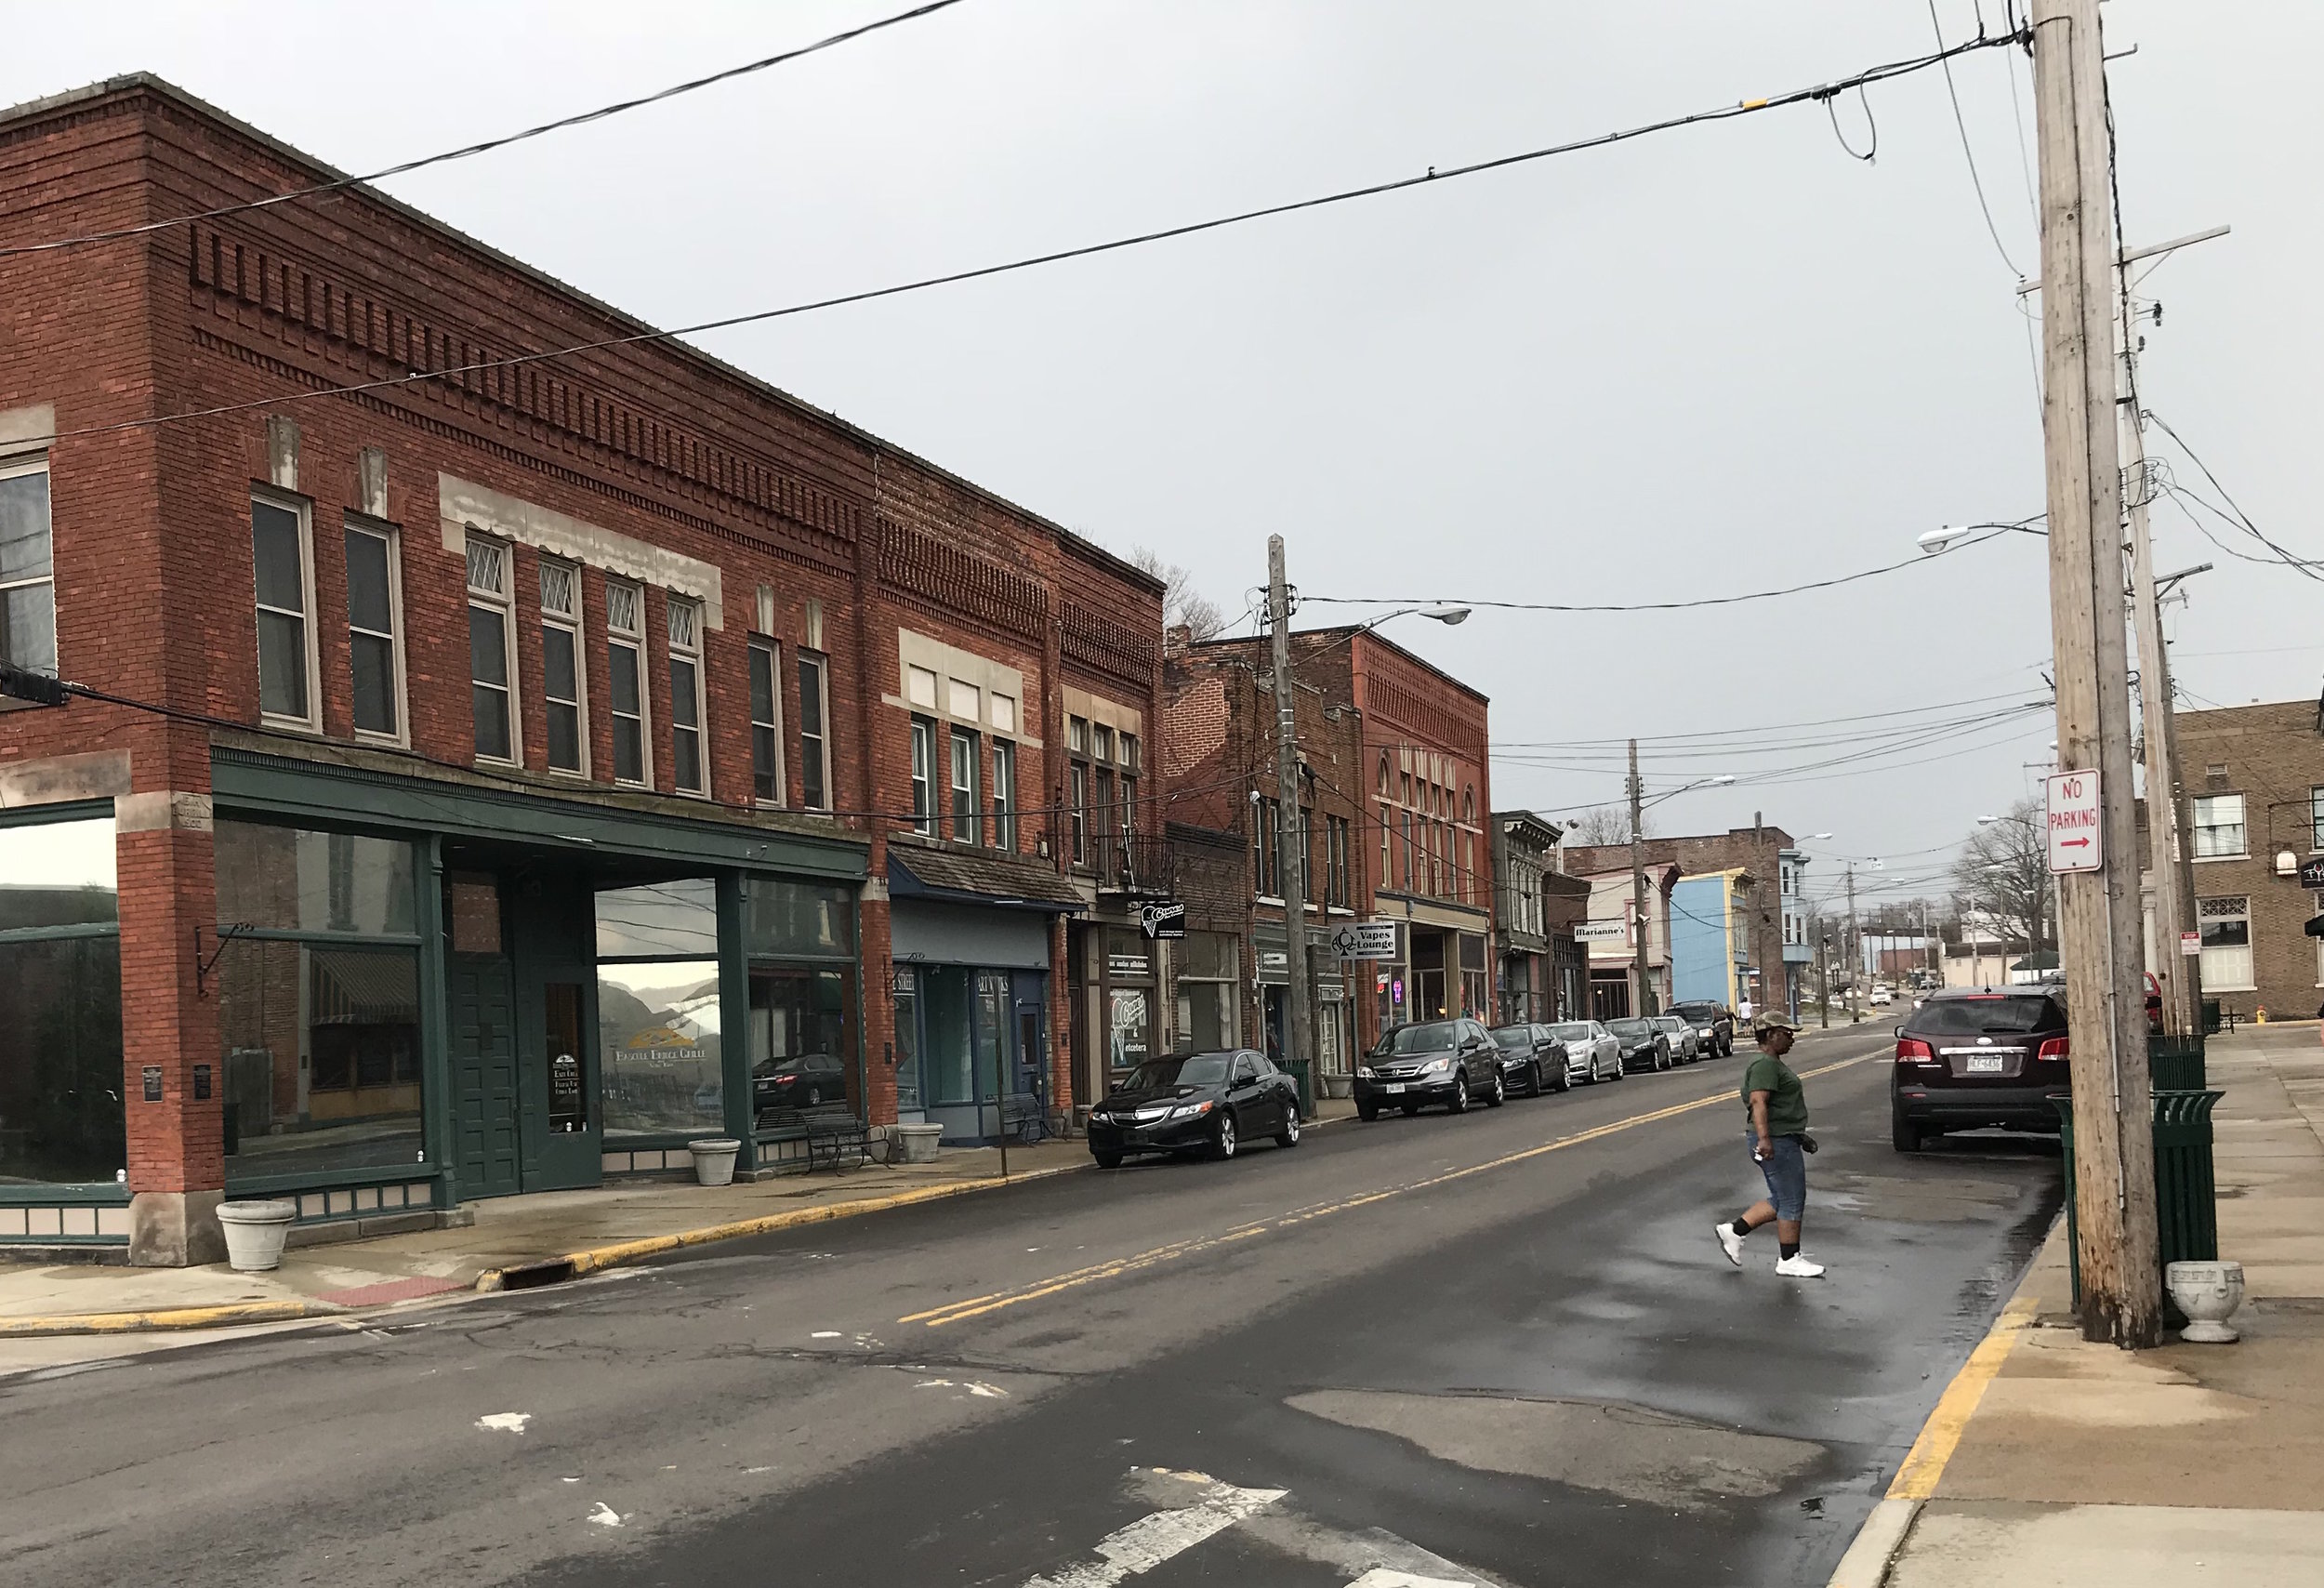 Ashtabula, Ohio: A few business struggle to survive the economic woes that have plagued northeast Ohio for years.